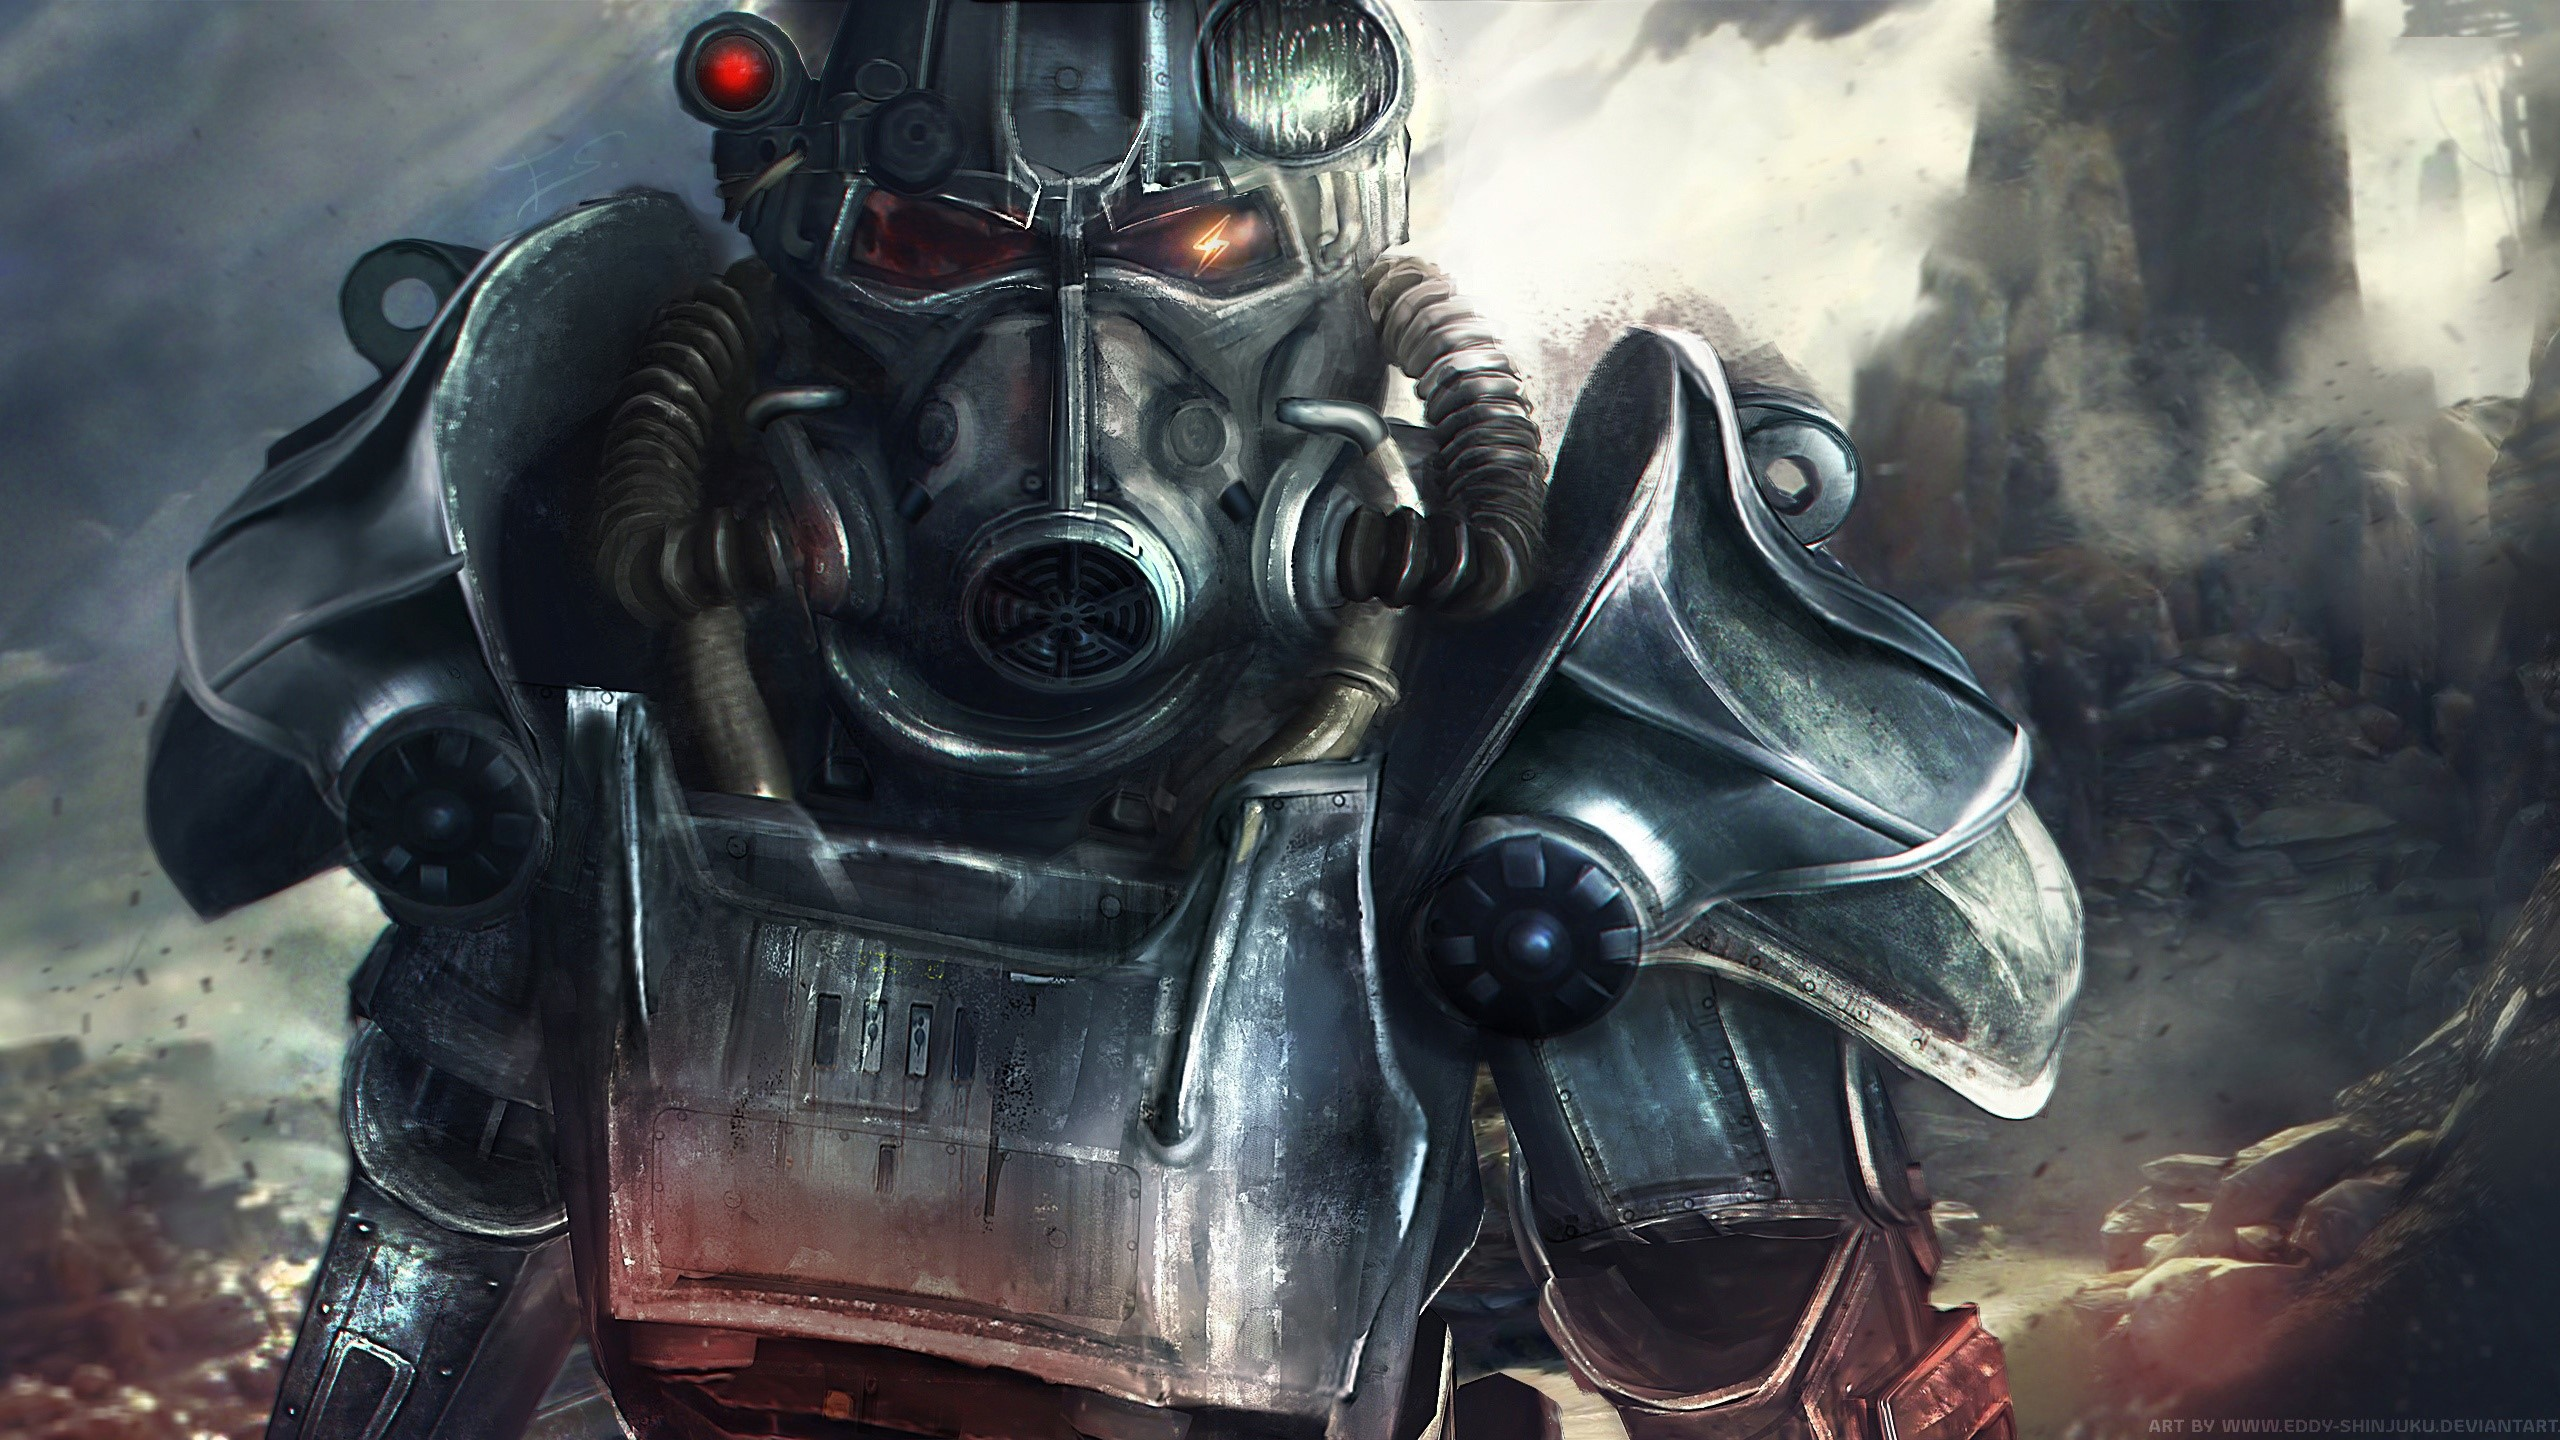 Nrc Ranger Of Fallout 4 Wallpaper 2k Quad Hd Id2443